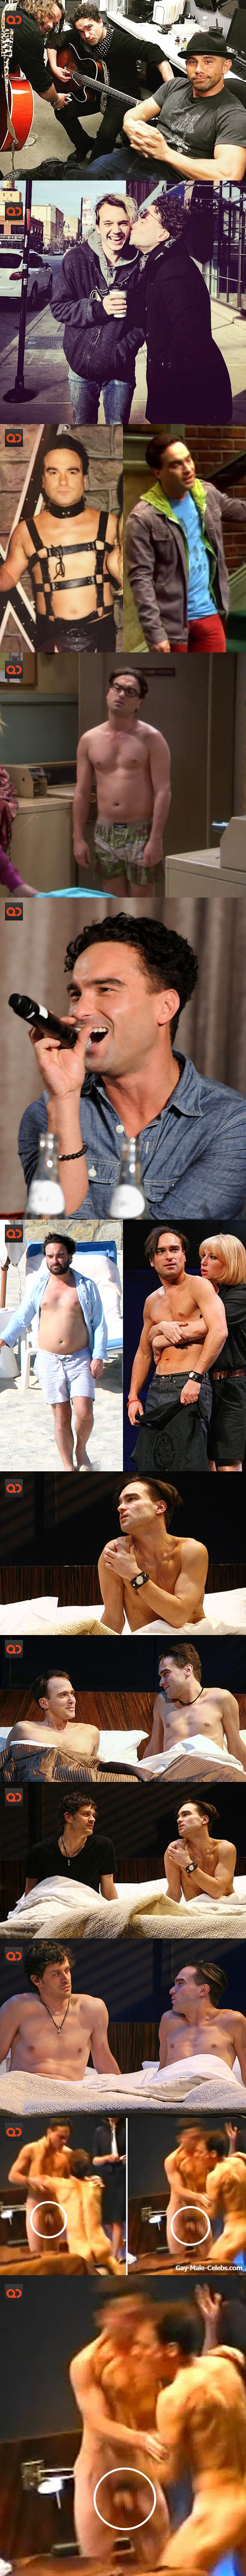 Johnny Galecki, Star Of The Big Bang Theory, Naked On The Stage In His Gay-Themed Broadway Play!